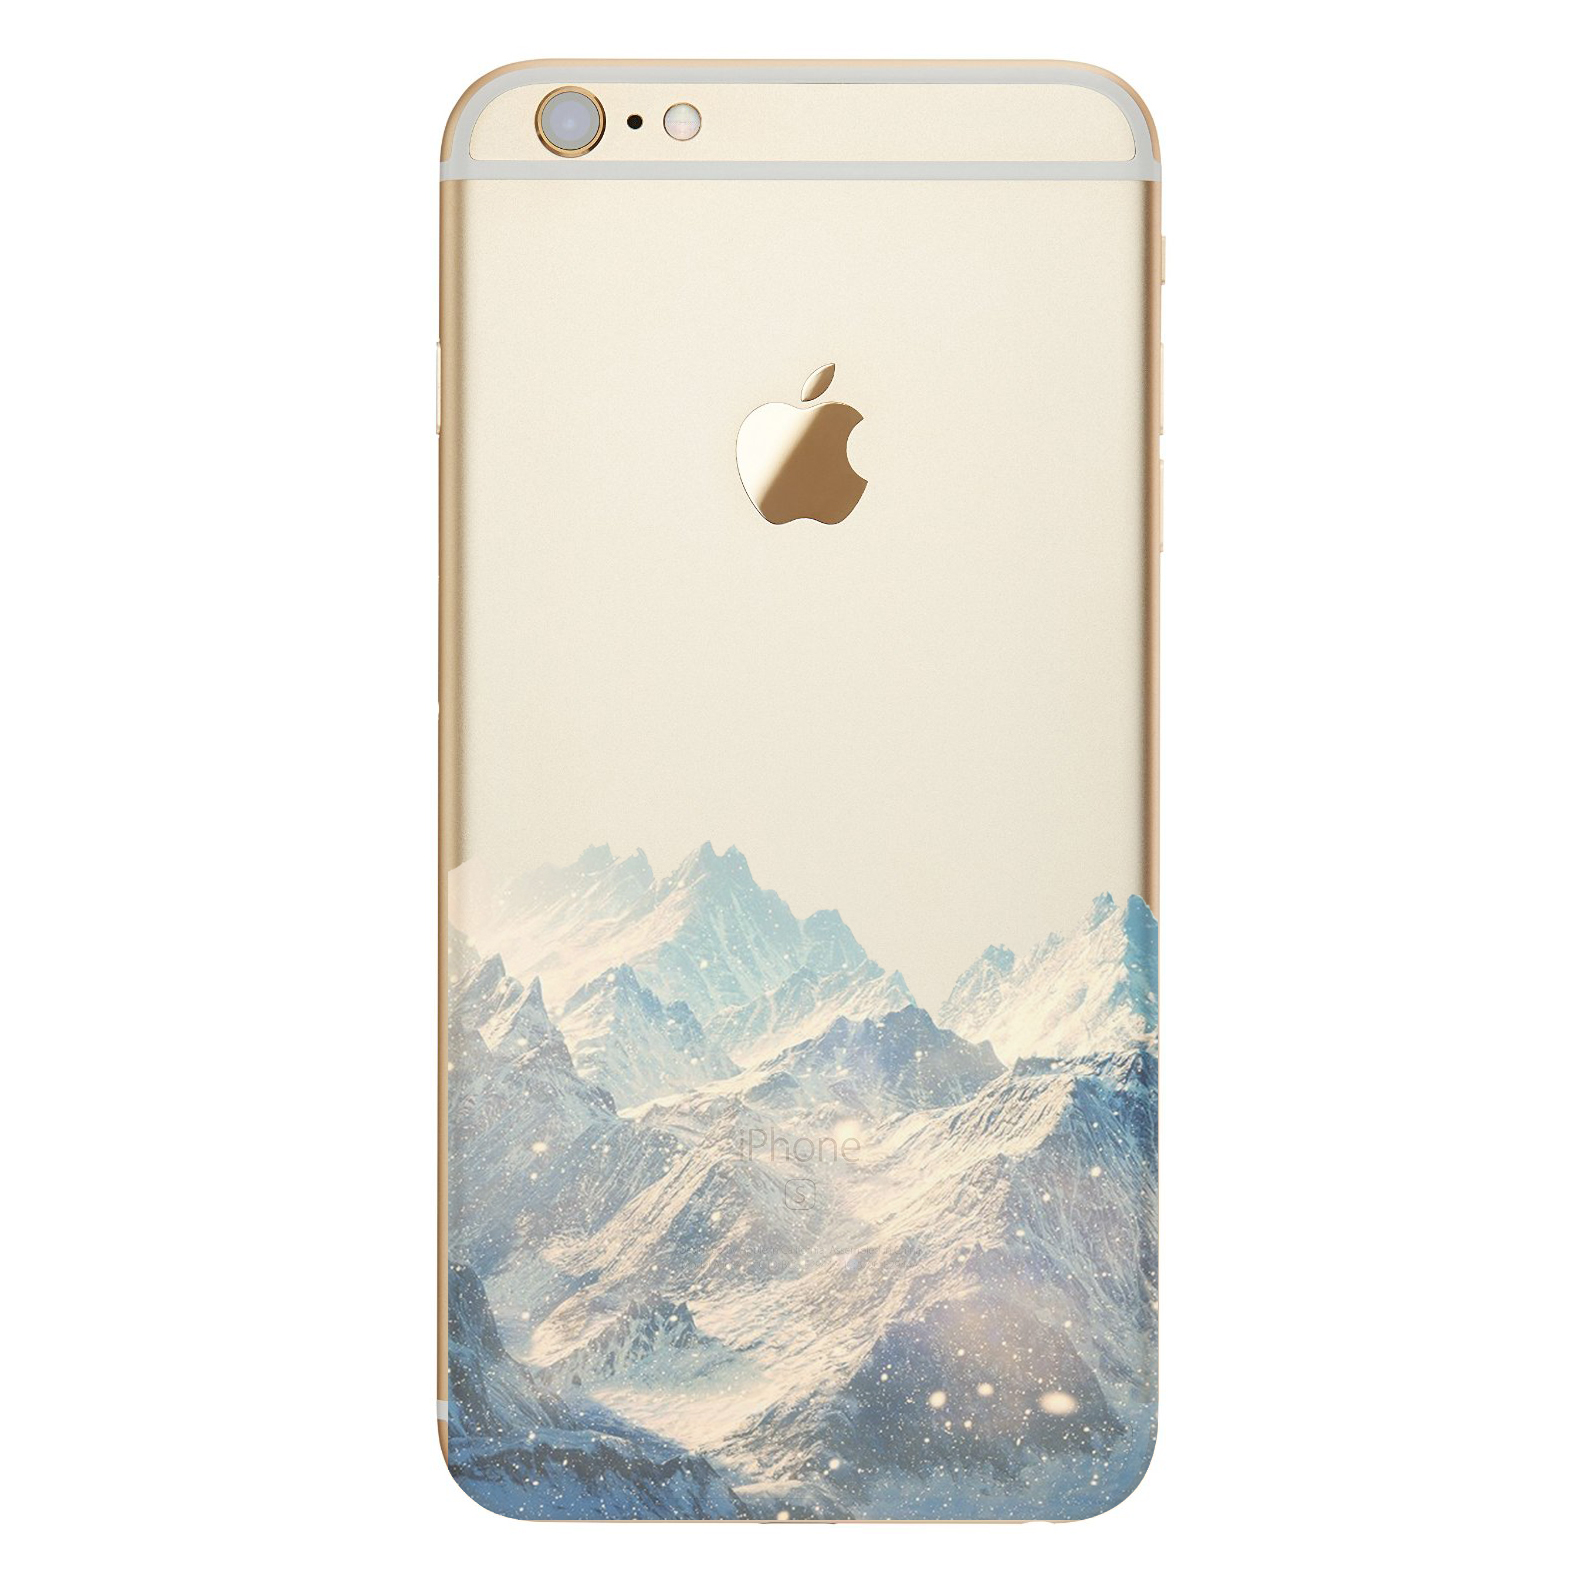 pleasant landscape print design phone cases for apple iphone 7 7pleasant landscape print design phone cases for apple iphone 7 7 plus case soft tpu clear transparent silicone cover shell capa in fitted cases from